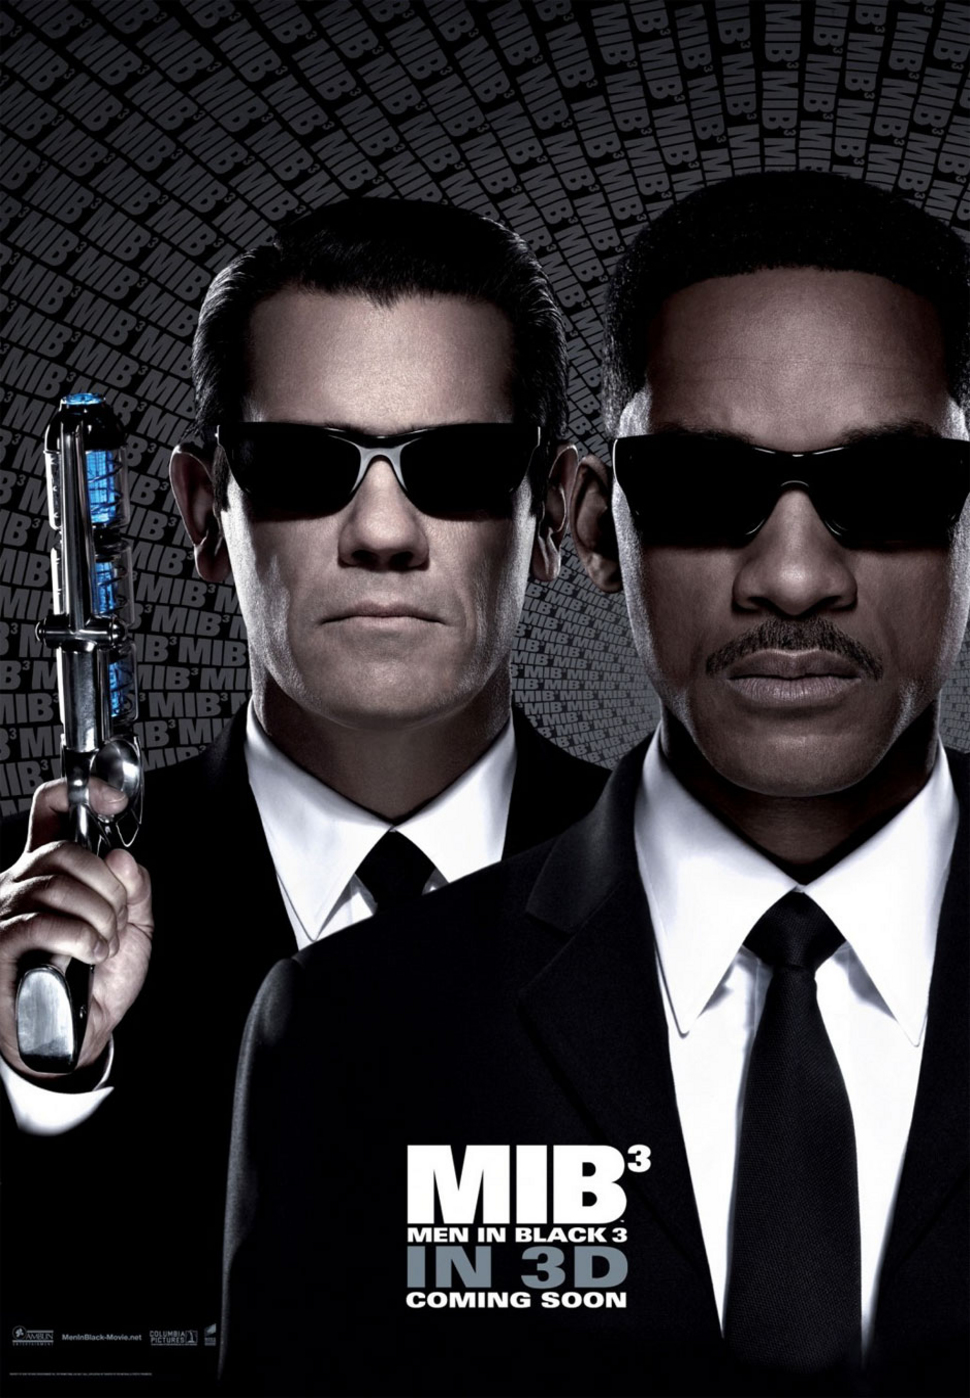 Men in Black 3 - Movie Poster #2 (Original)